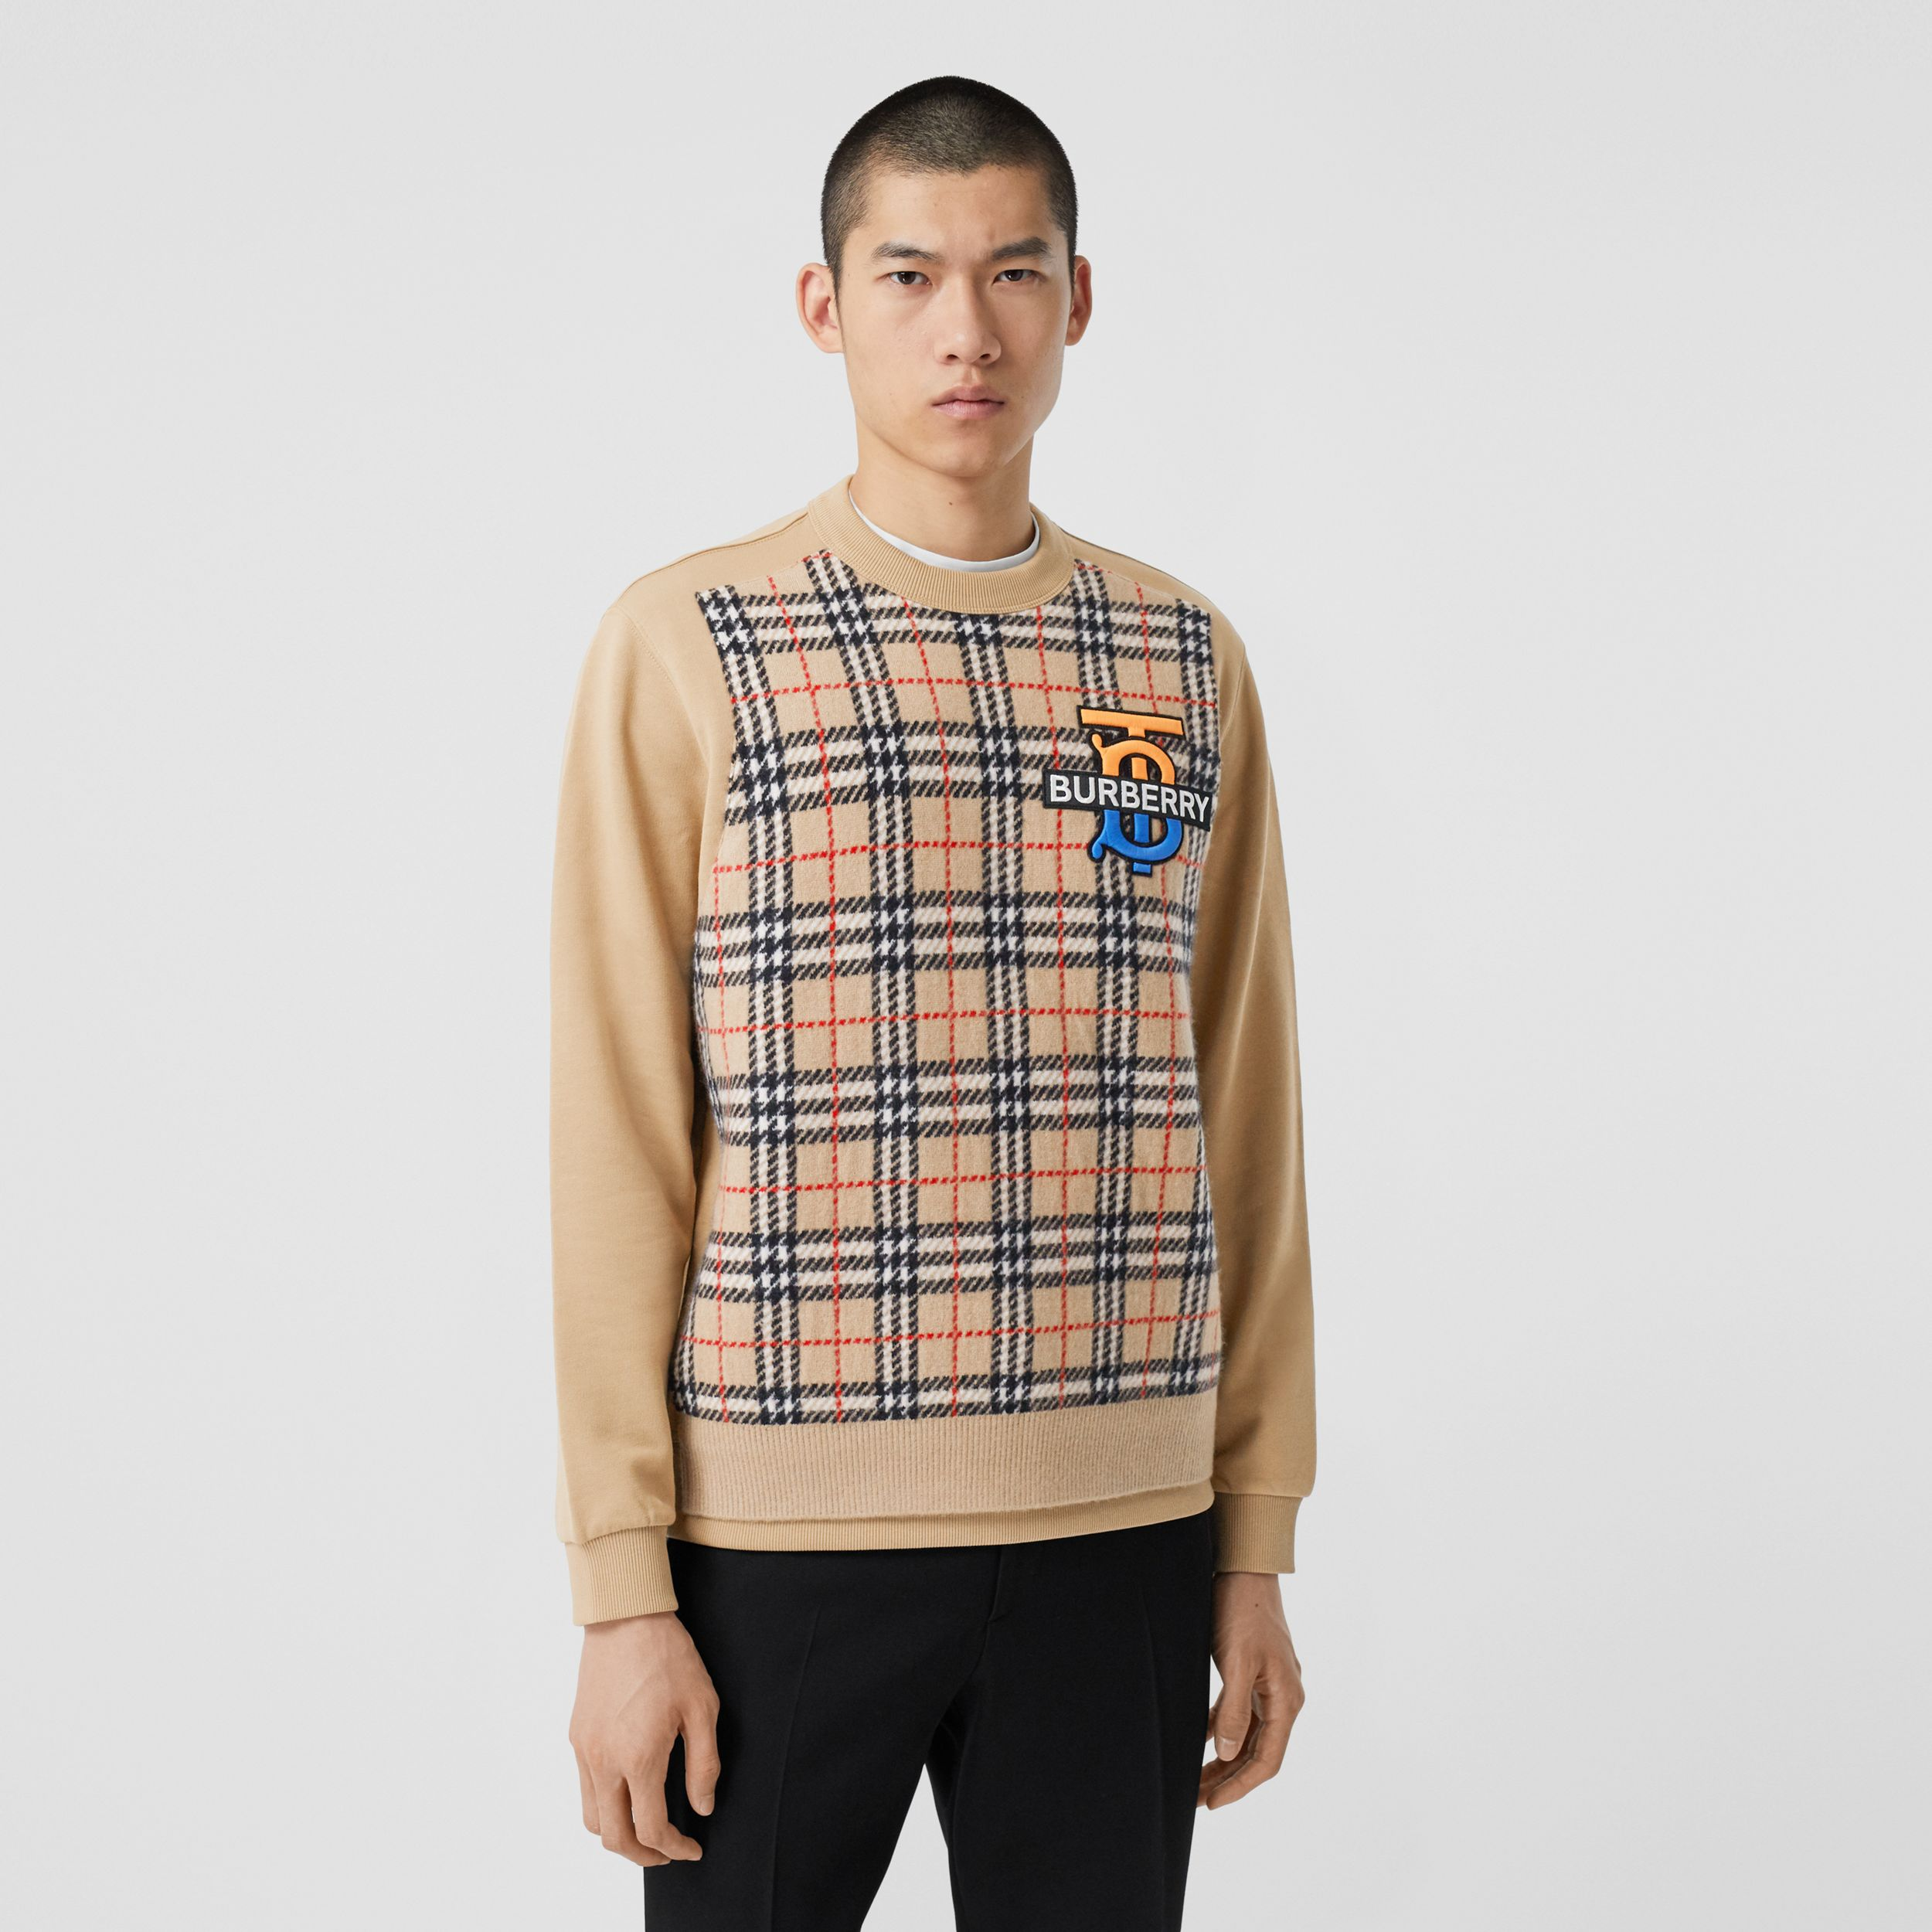 Monogram Motif Check Cashmere Panel Sweatshirt in Archive Beige - Men | Burberry Canada - 1